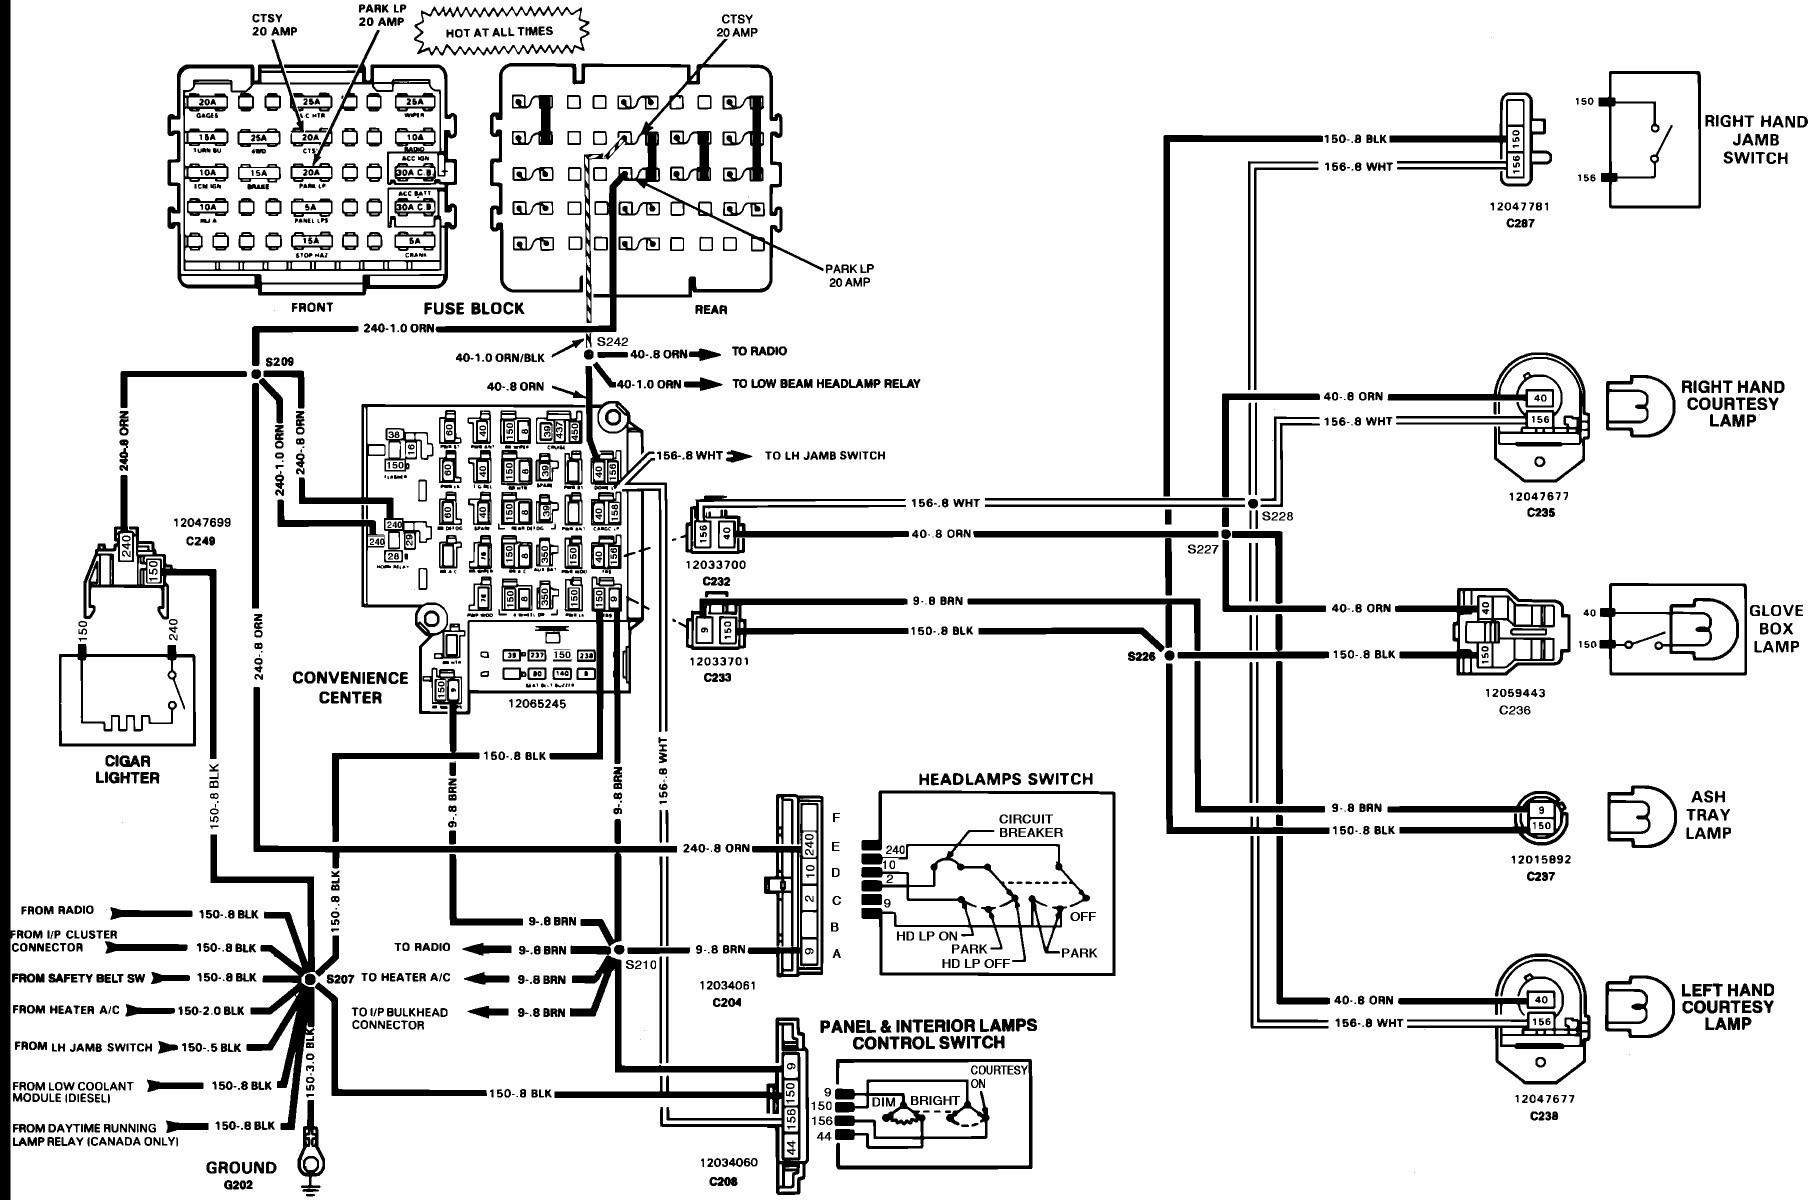 Fabulous Mopar Alternator Wiring Diagram Wiring Library Wiring Cloud Oideiuggs Outletorg